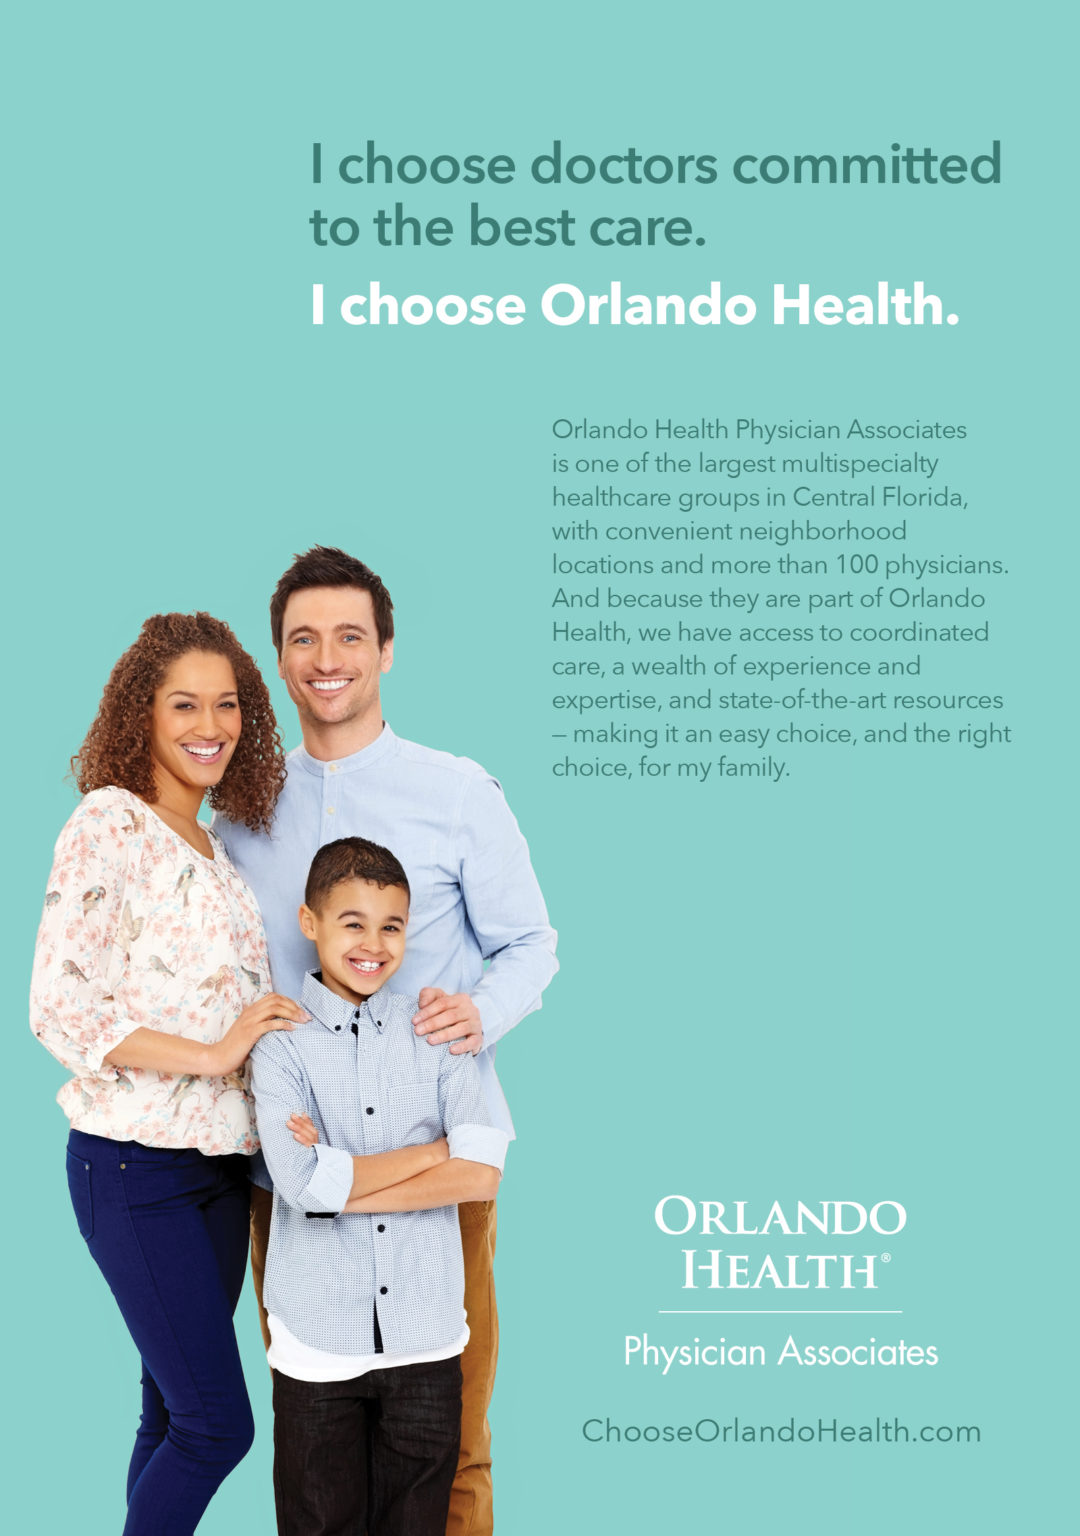 Orlando Health Physician Associates ad